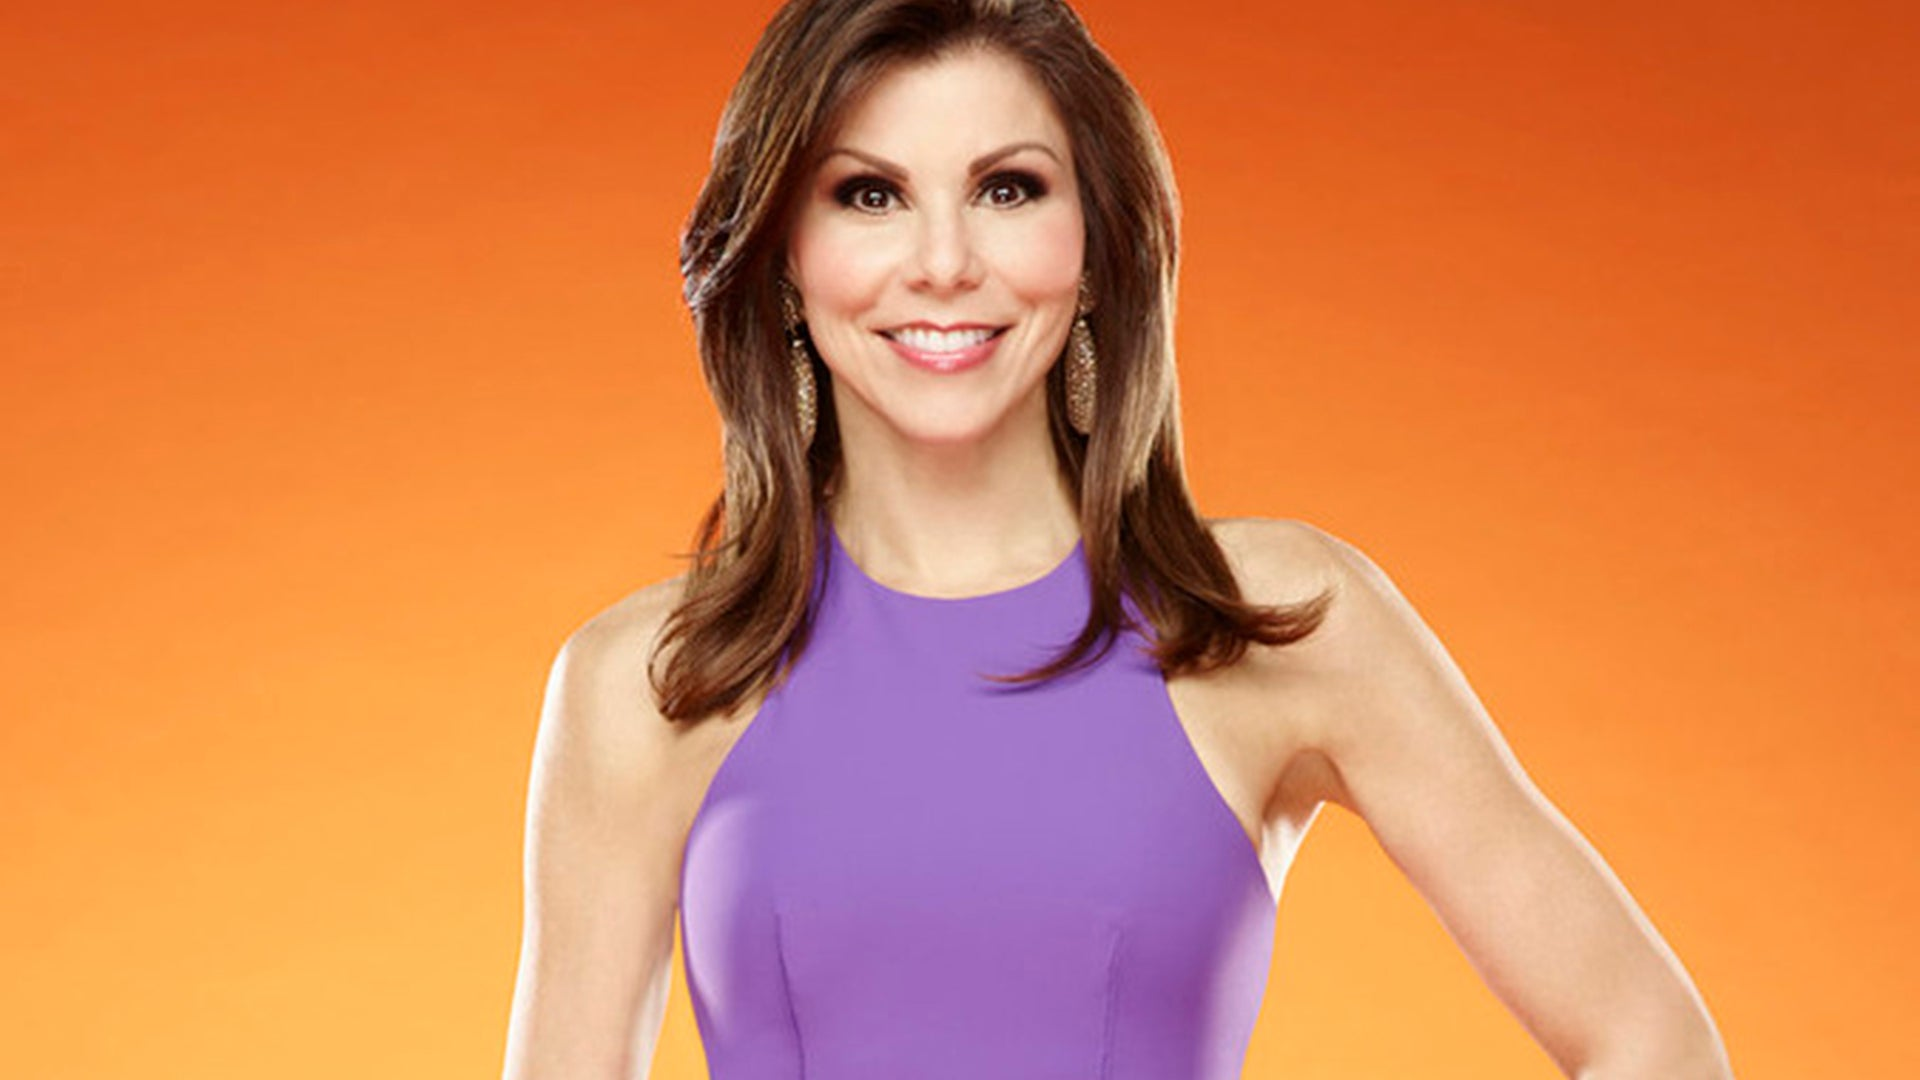 Heather Dubrow, The Real Housewives of Orange County